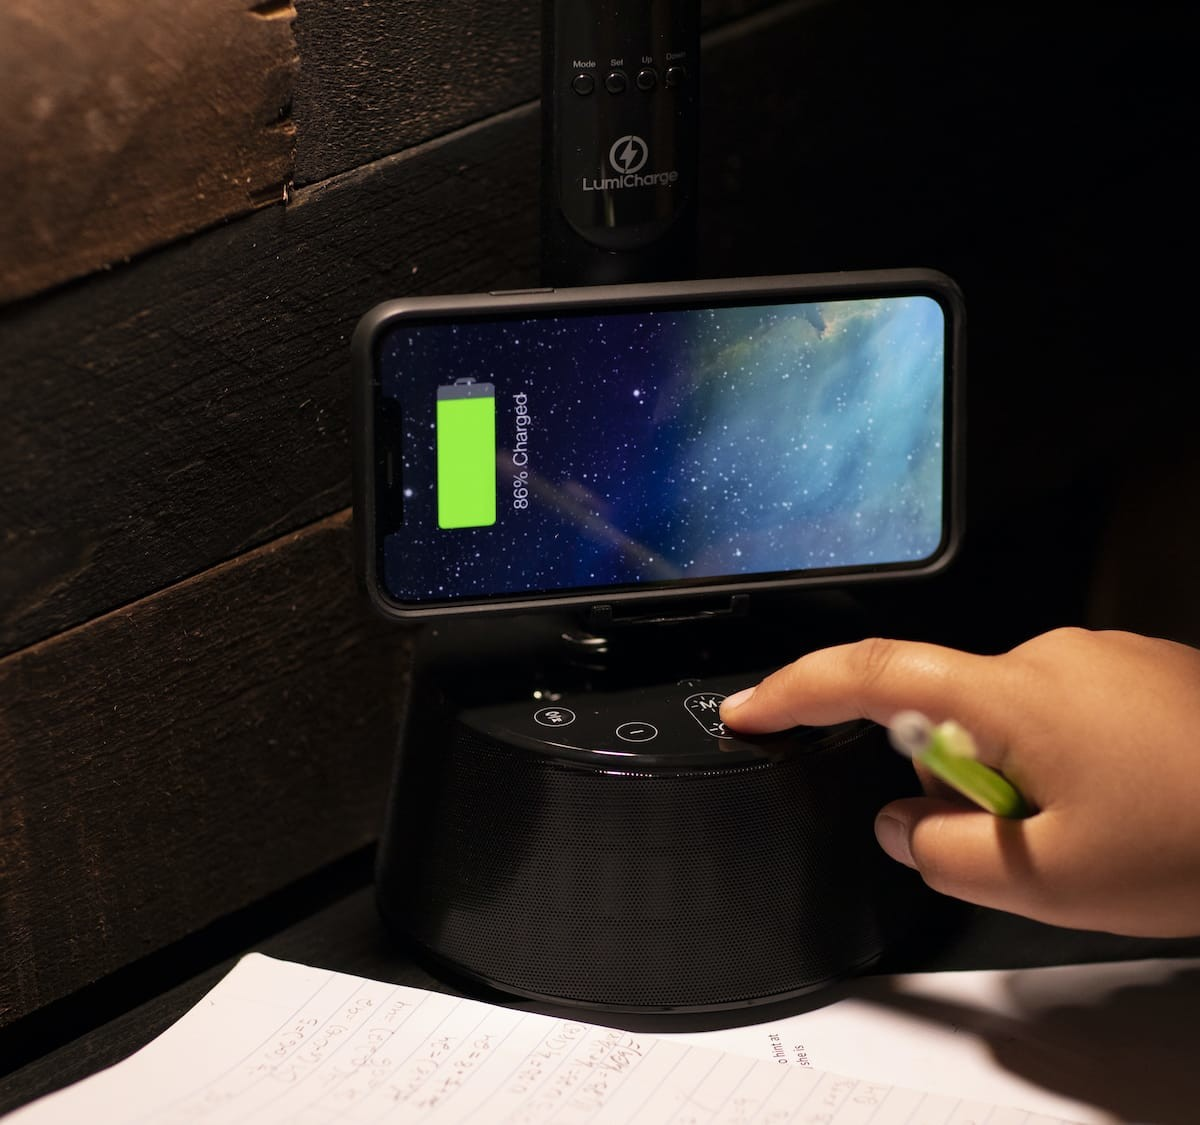 LumiCharge T2W Bluetooth LED lamp doubles as a wireless phone charger